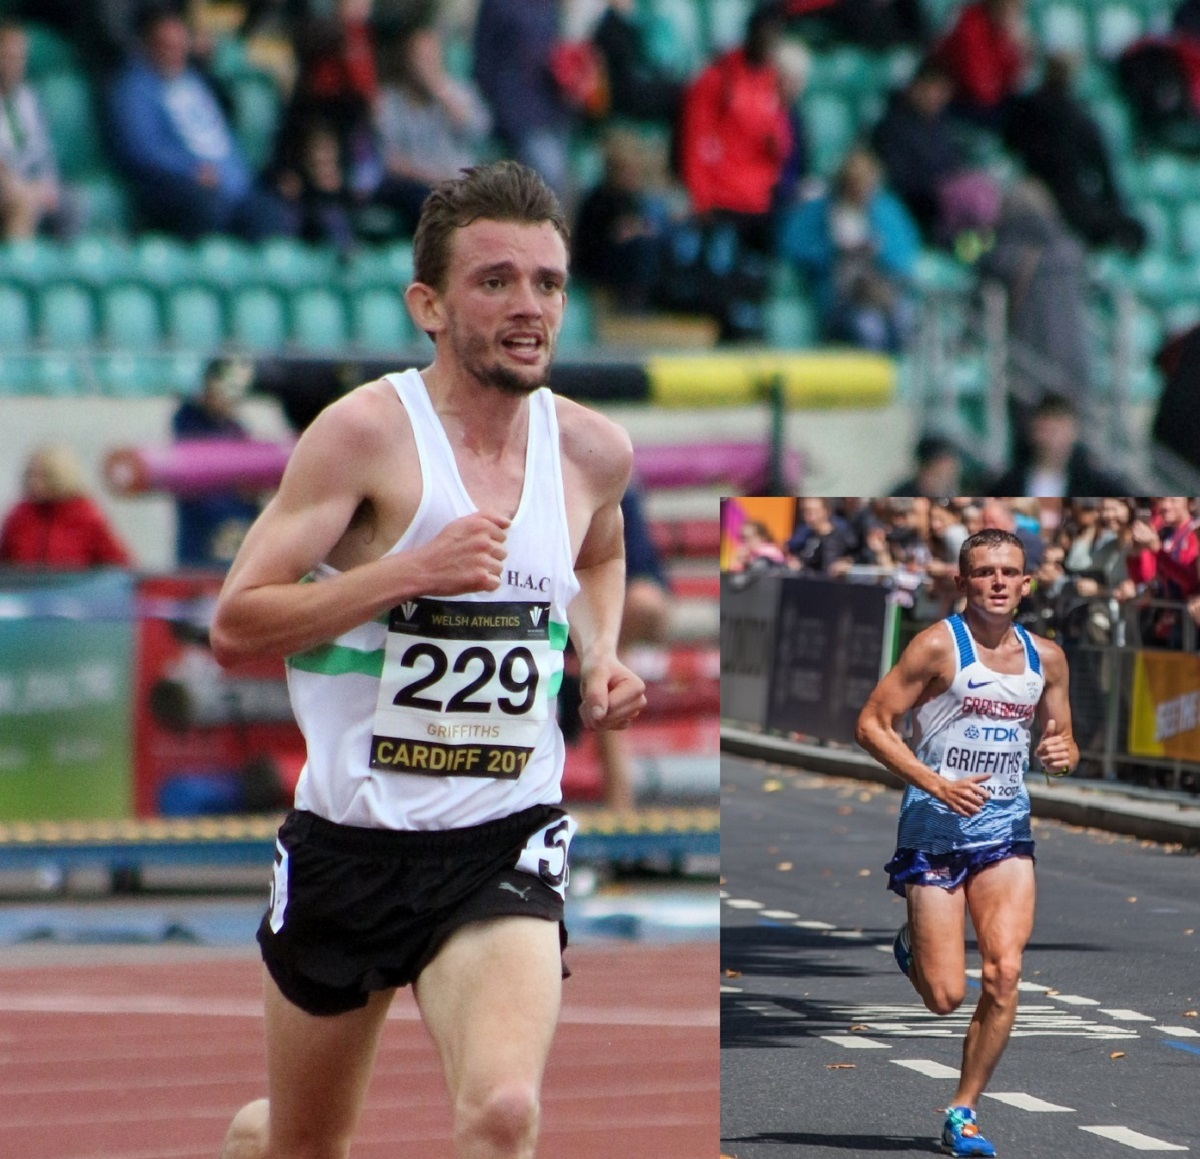 Dewi Griffiths and Josh Griffiths will be competiting as part of Team Wales at this year's Commonwealth Games